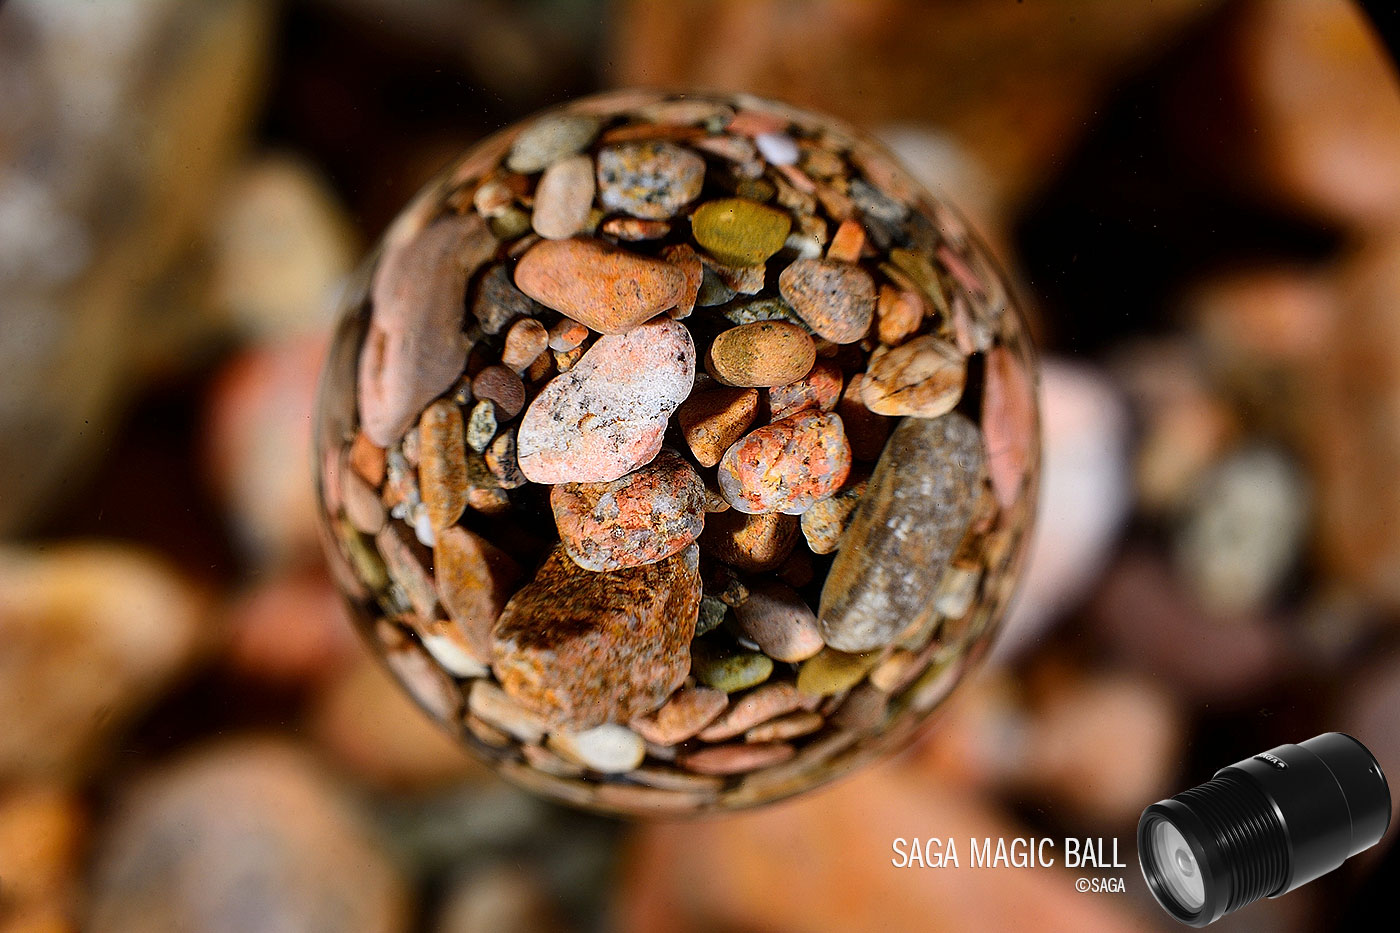 Saga Magic Ball—Underwater Macro Fisheye Lens